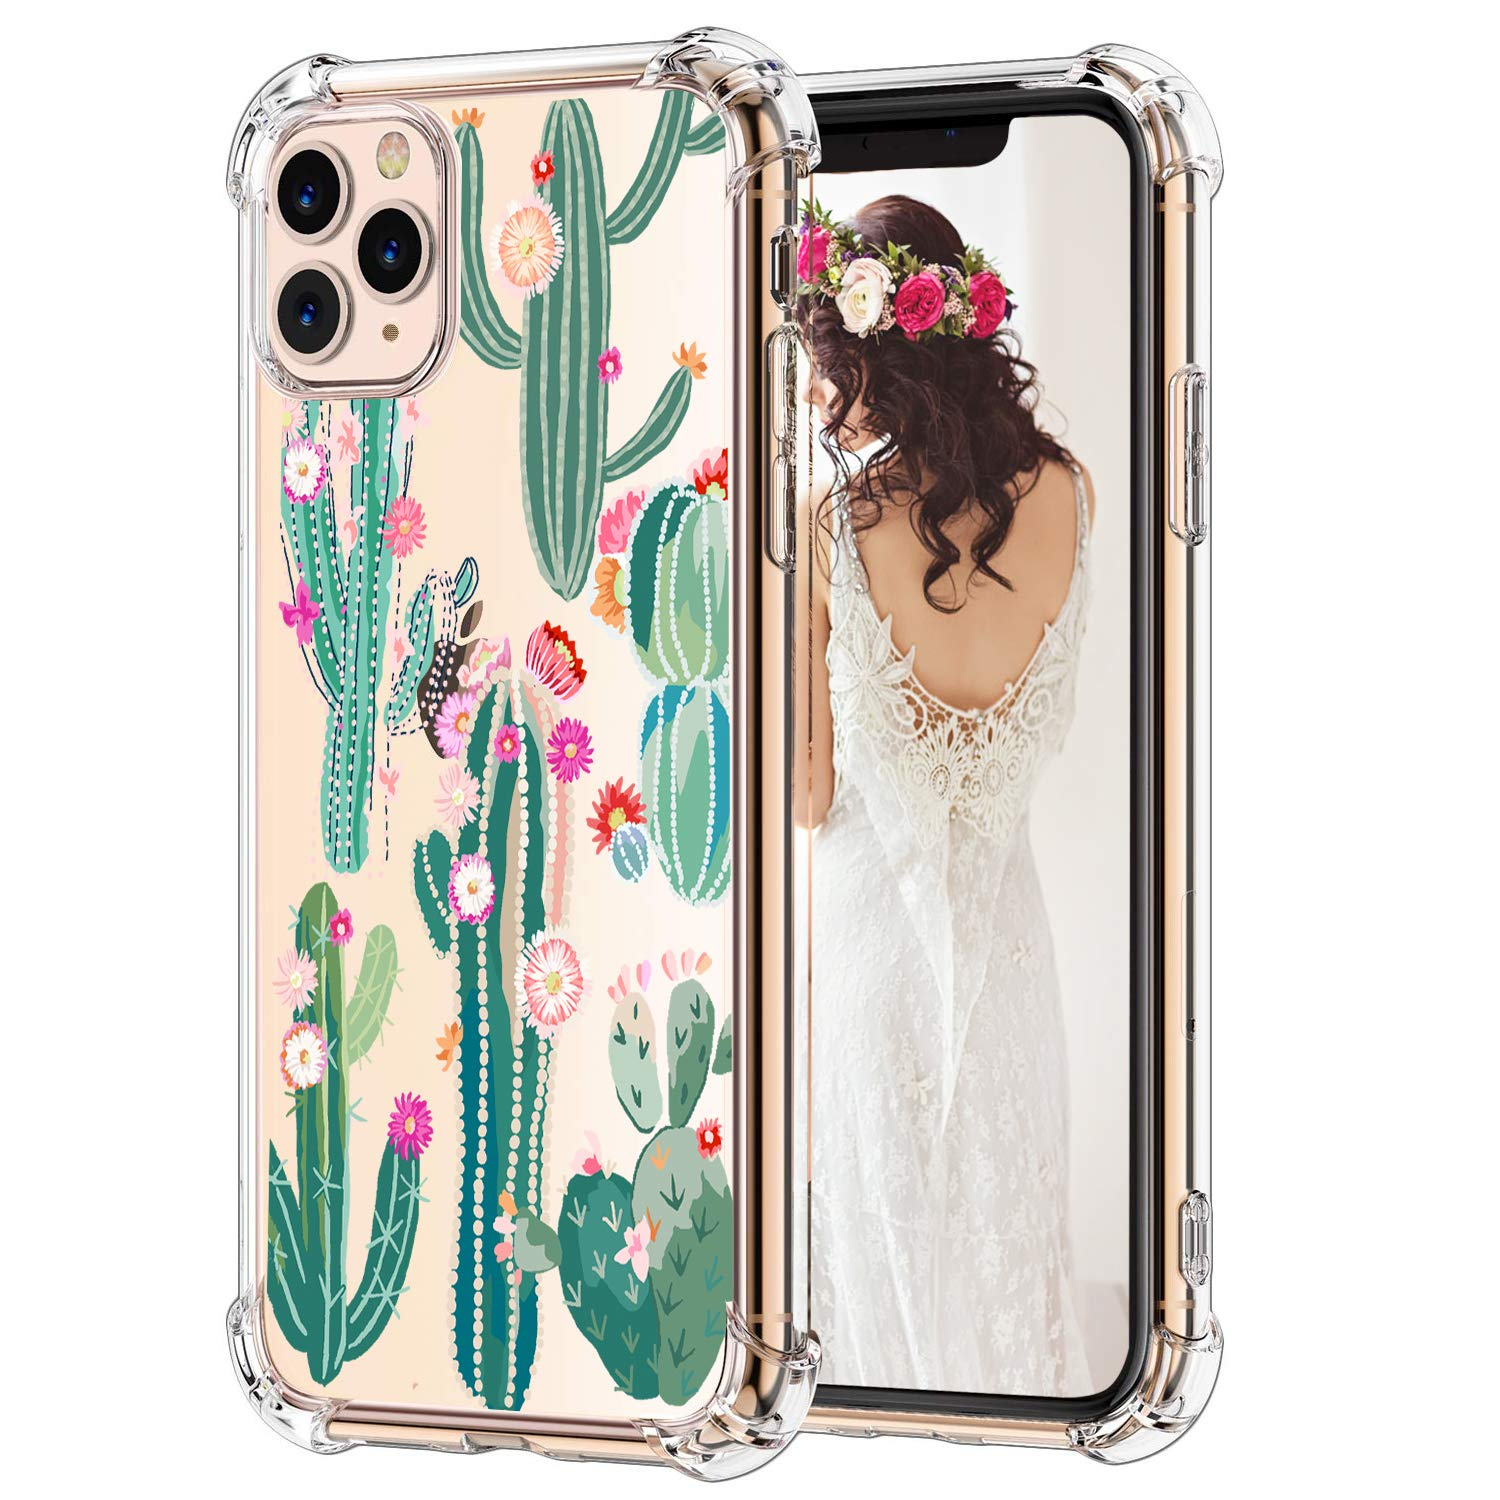 """Hepix Cactus iPhone 11 Pro Max Case Cacti Flowers Pattern Clear 11 Pro Max Cases for Girls, Slim Soft Flexible TPU Frame with Protective Bumpers Anti-Scratch Shockroof for iPhone 11 Pro Max 6.5"""""""